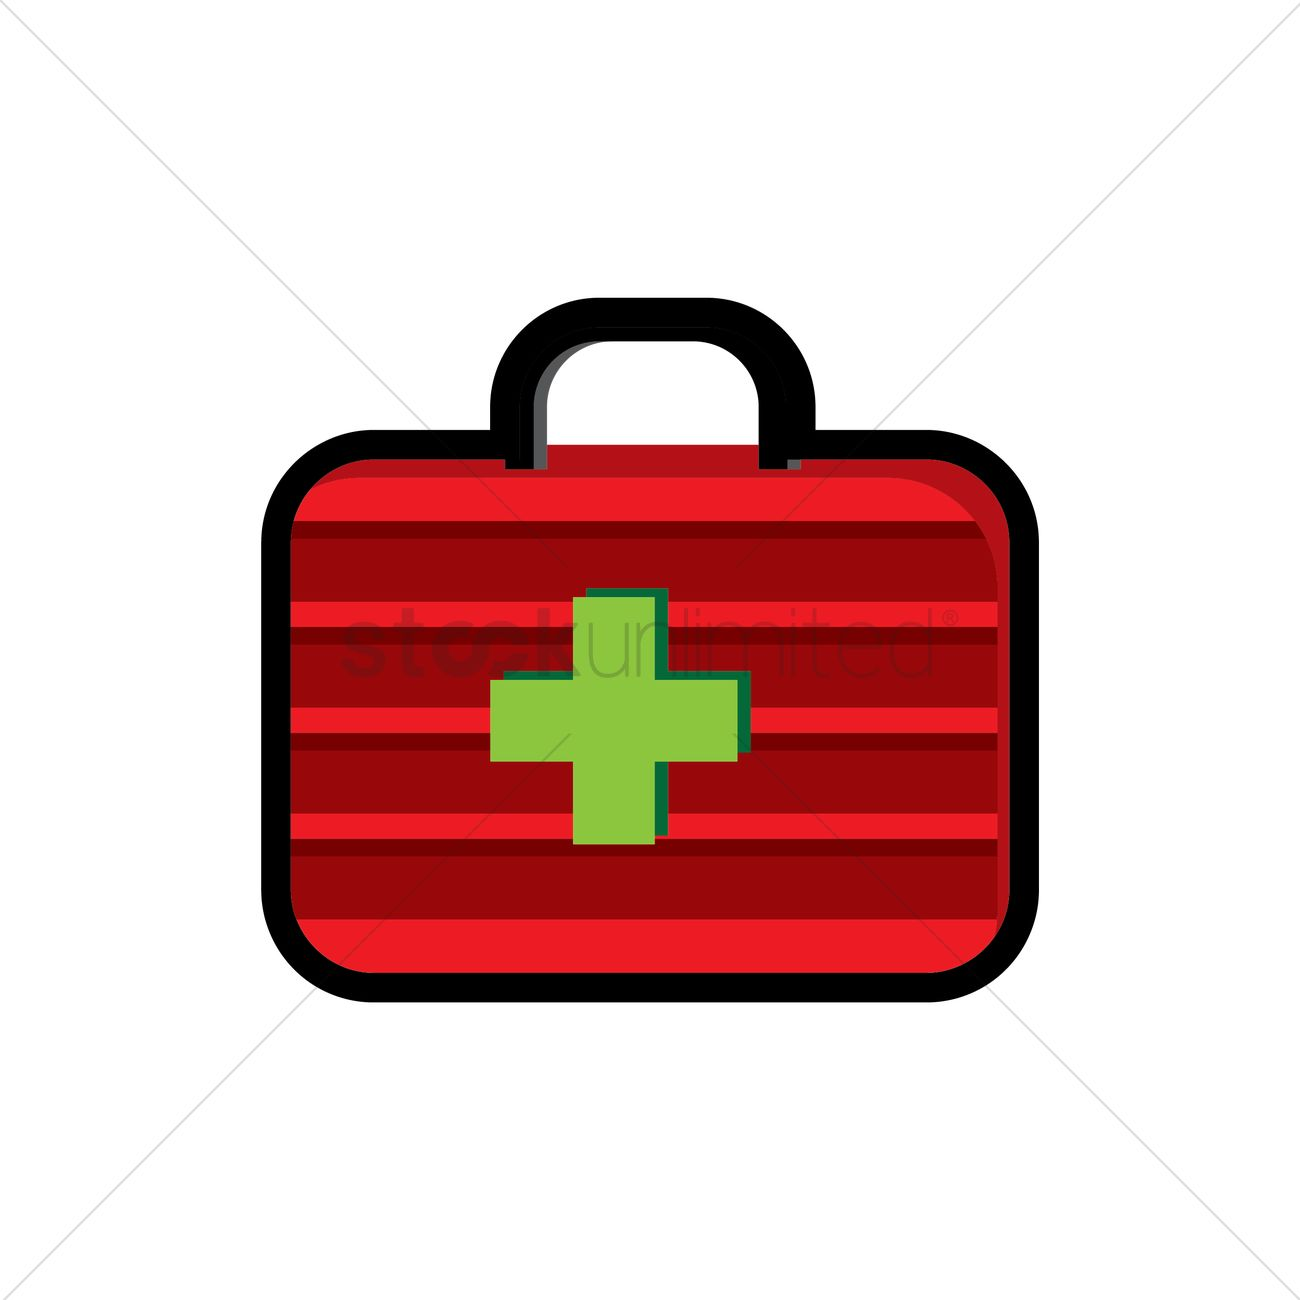 First aid kit Vector Image - 1870894 | StockUnlimited